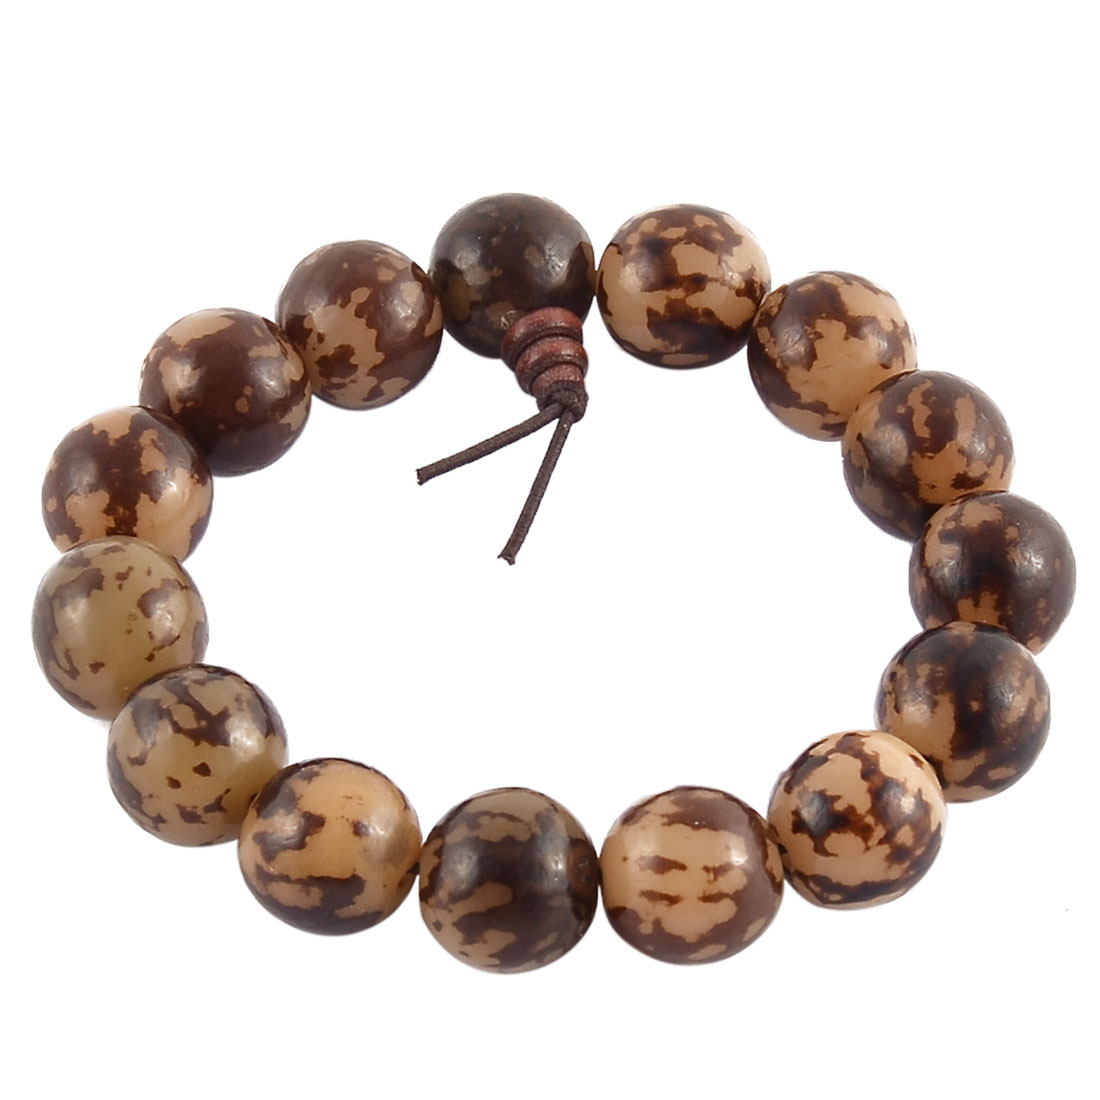 Handmade DIY Craft Stretch Round Beads Prayer Wrist Bangle Bracelet Brown